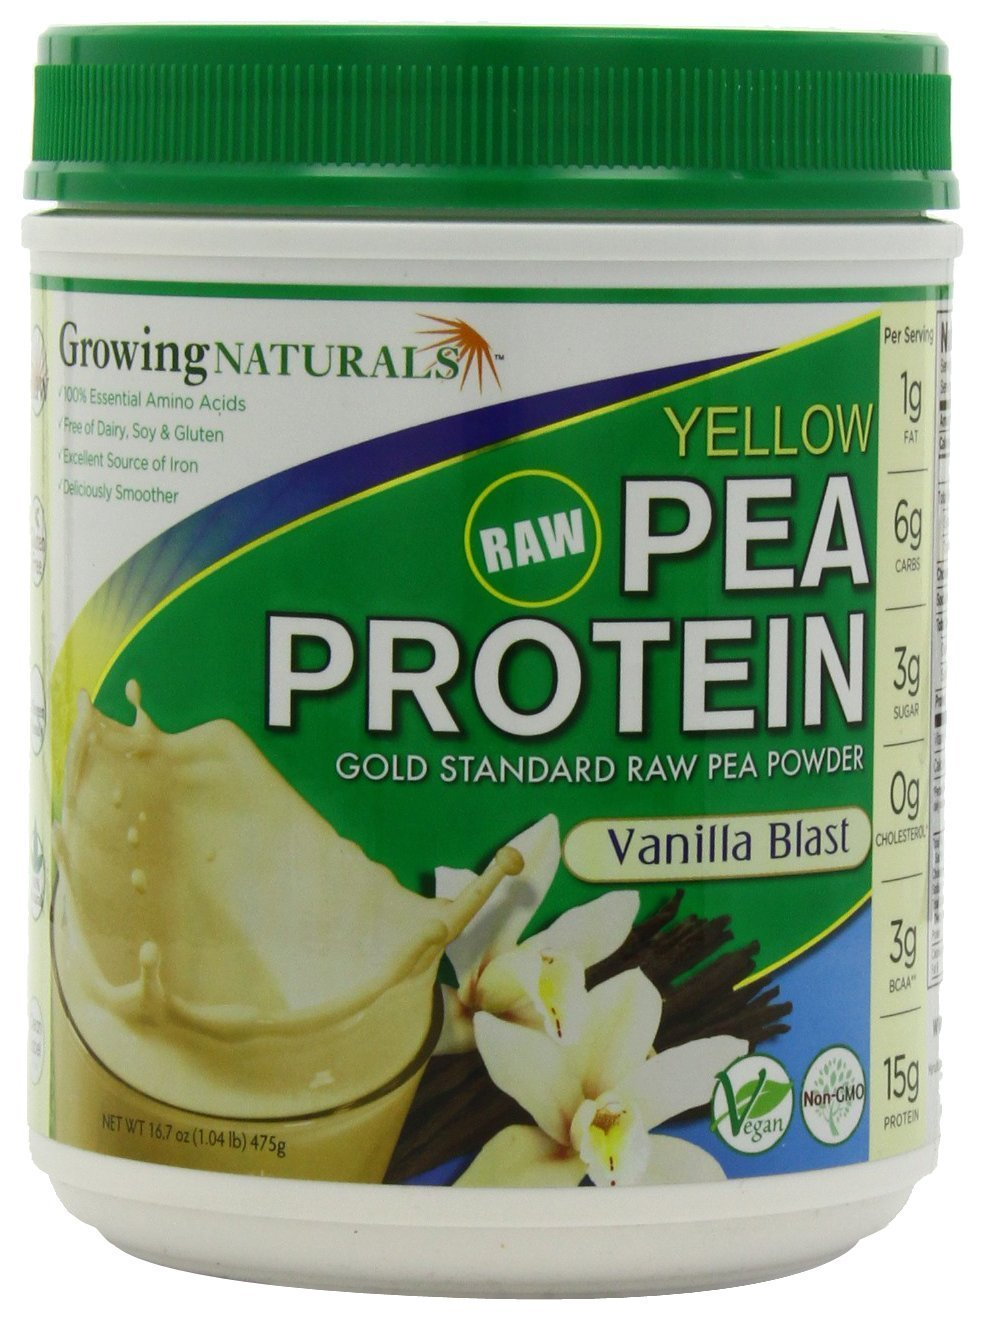 Growing Naturals Pea Protein Powder Vanilla - 16.7 oz (Pack of 3)